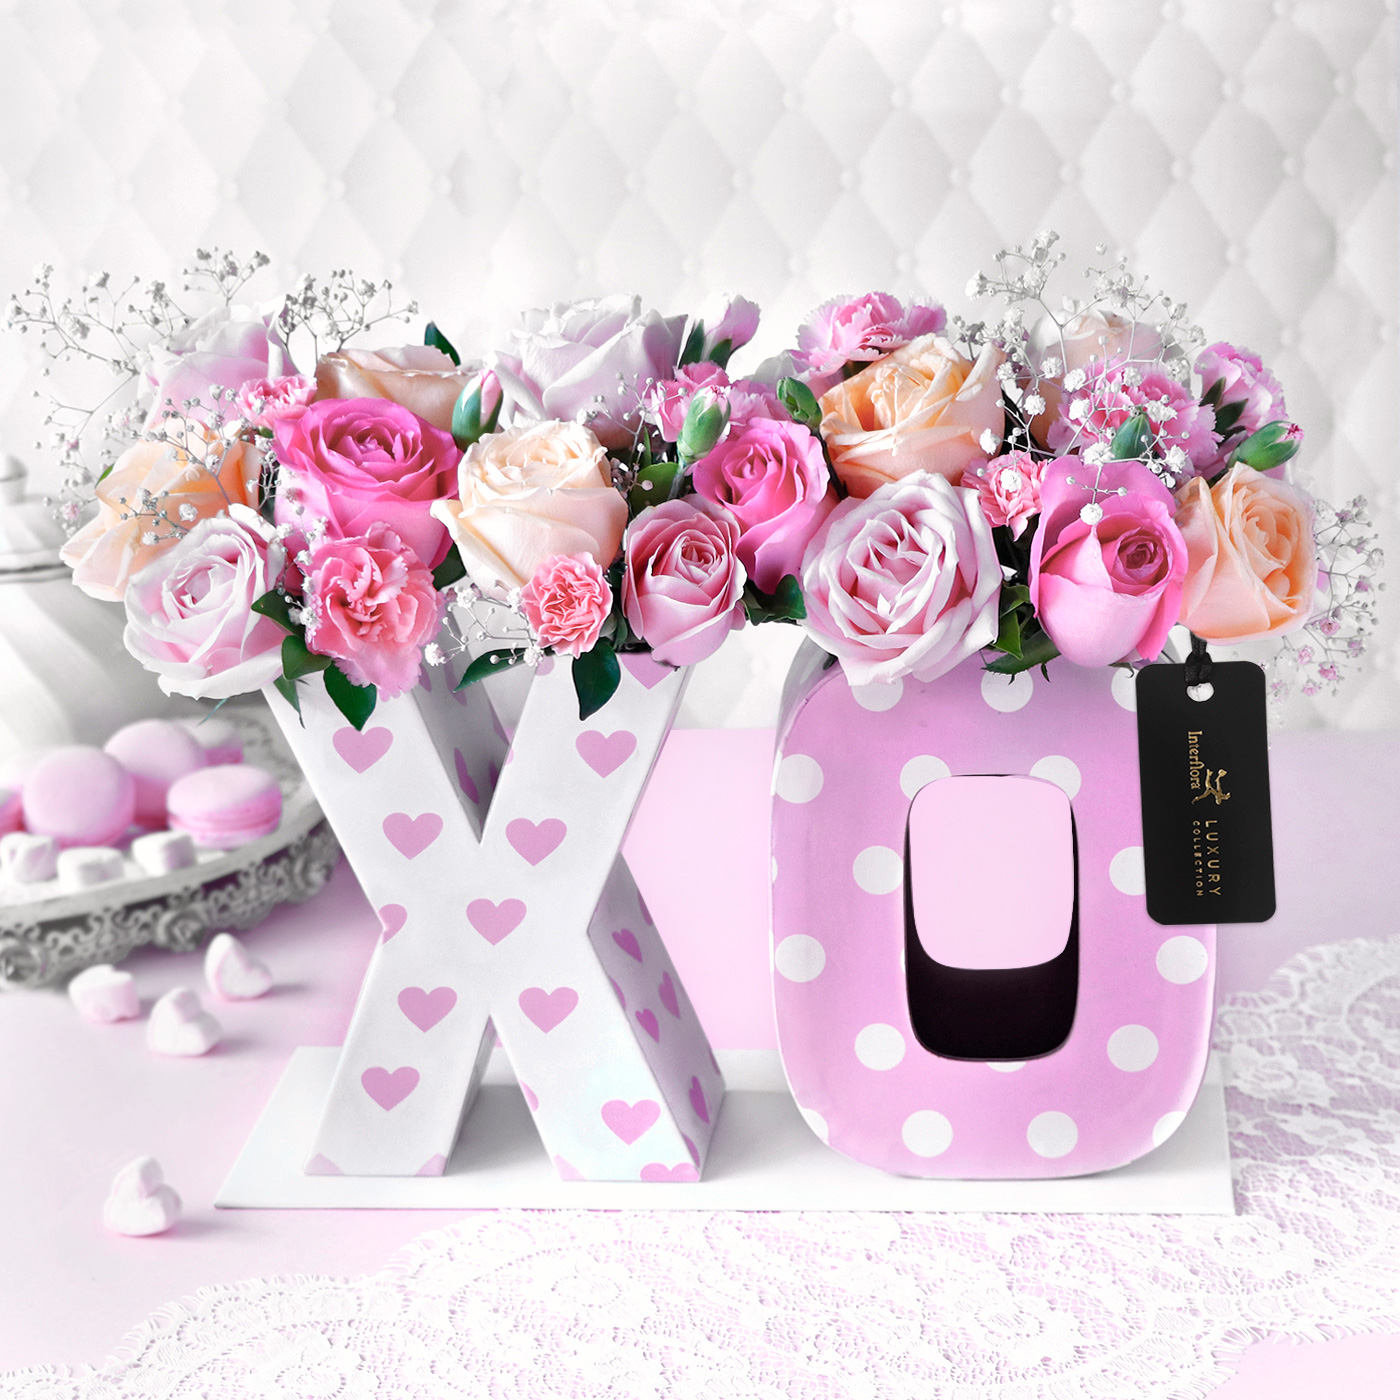 hugs and kisses flowers